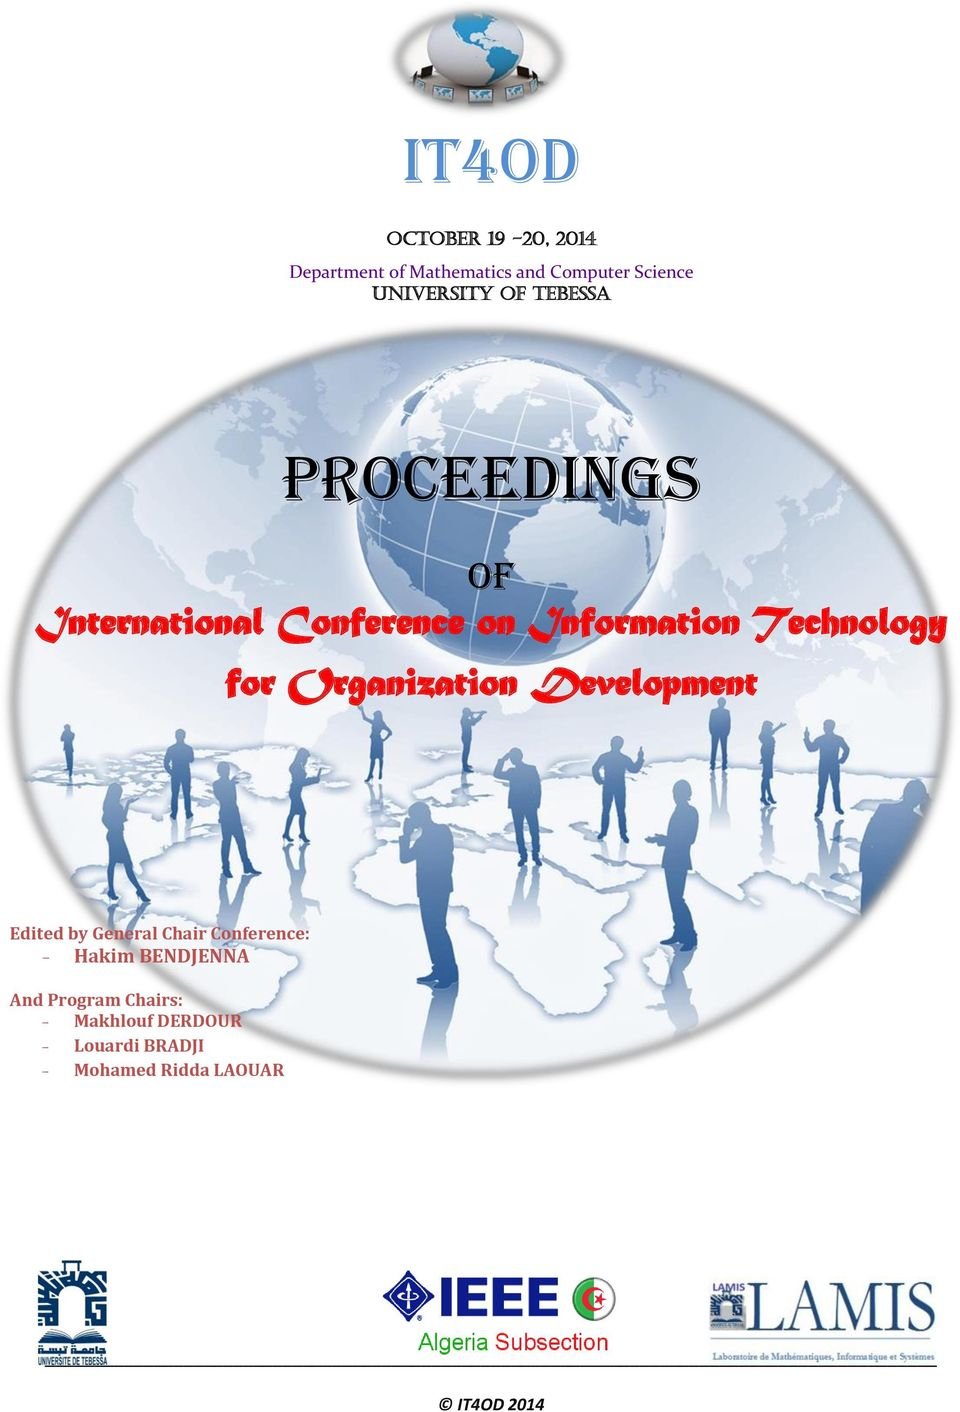 Organization Development Edited by General Chair Conference: - Hakim BENDJENNA And